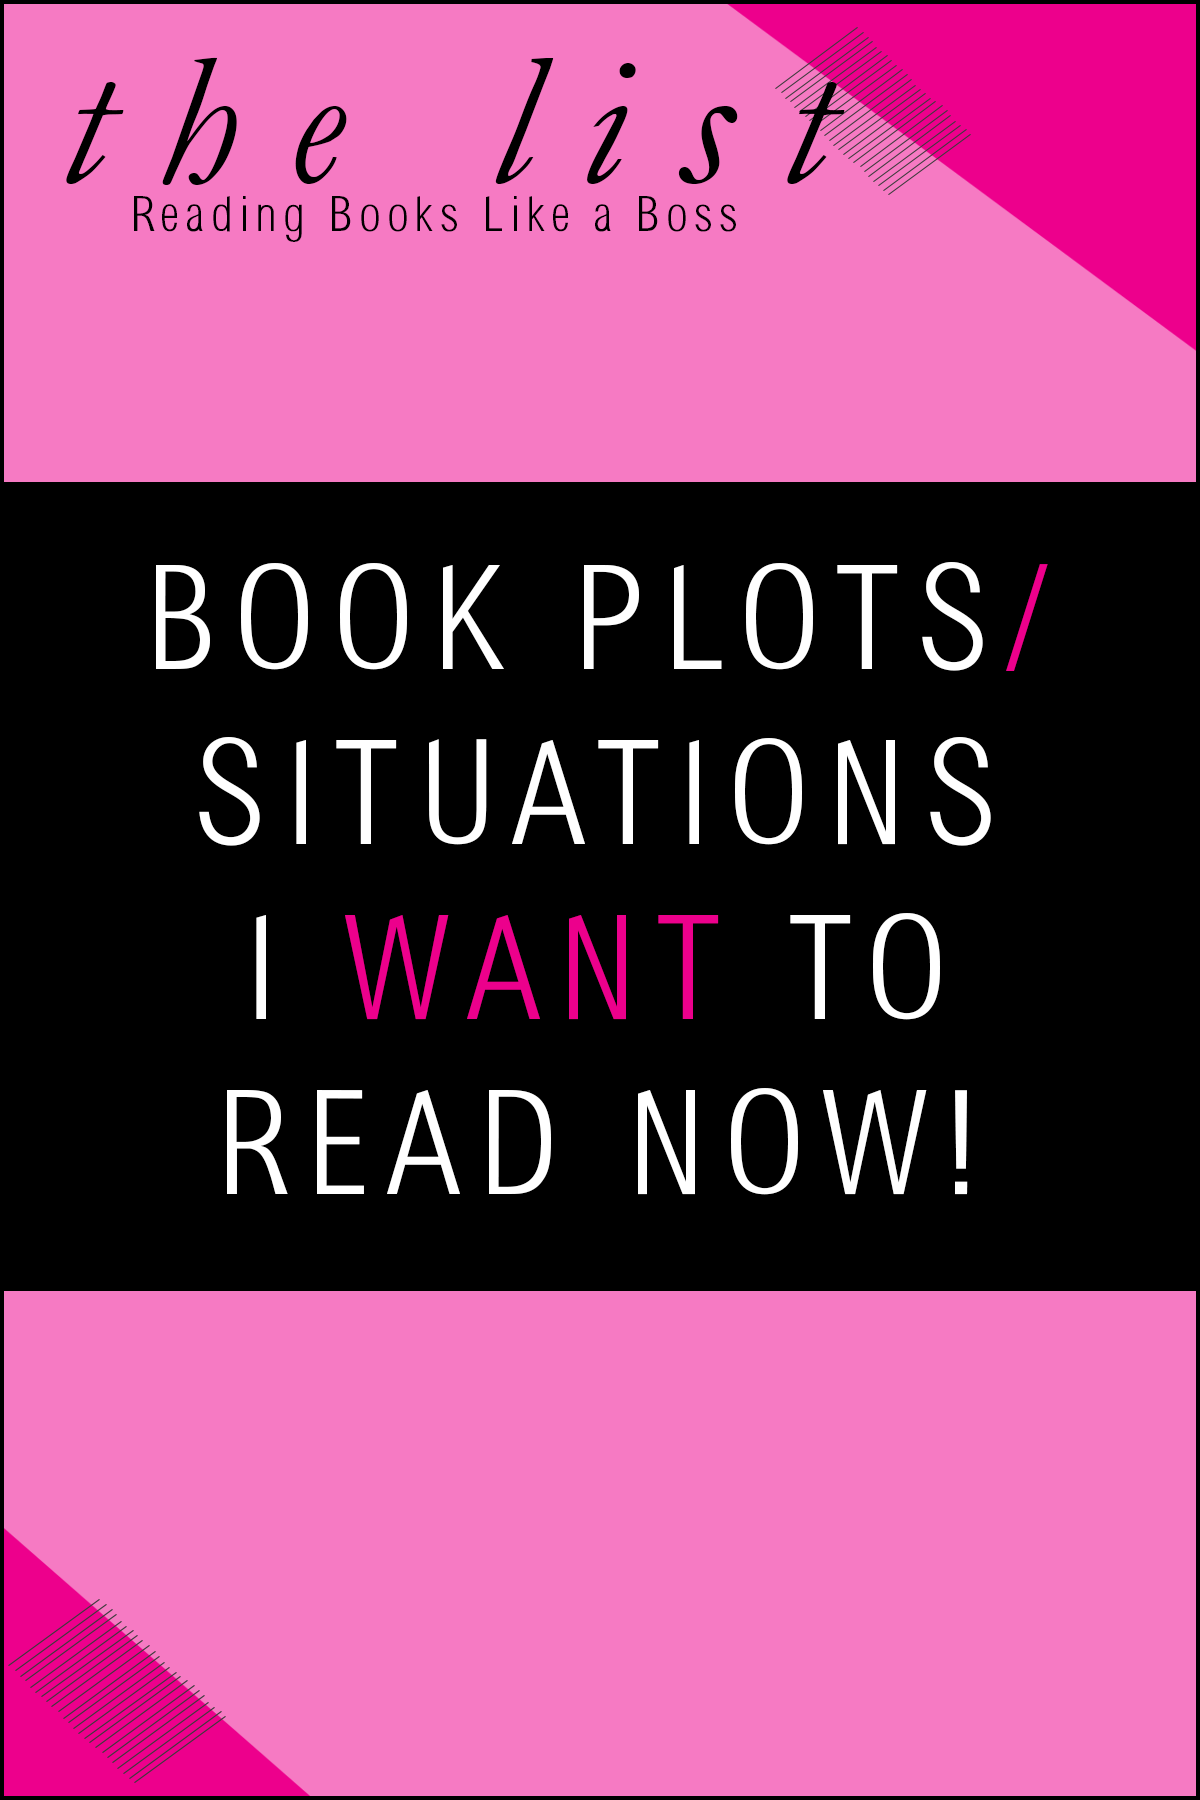 The List - Book Plots/Situations I Want to Read NOW!